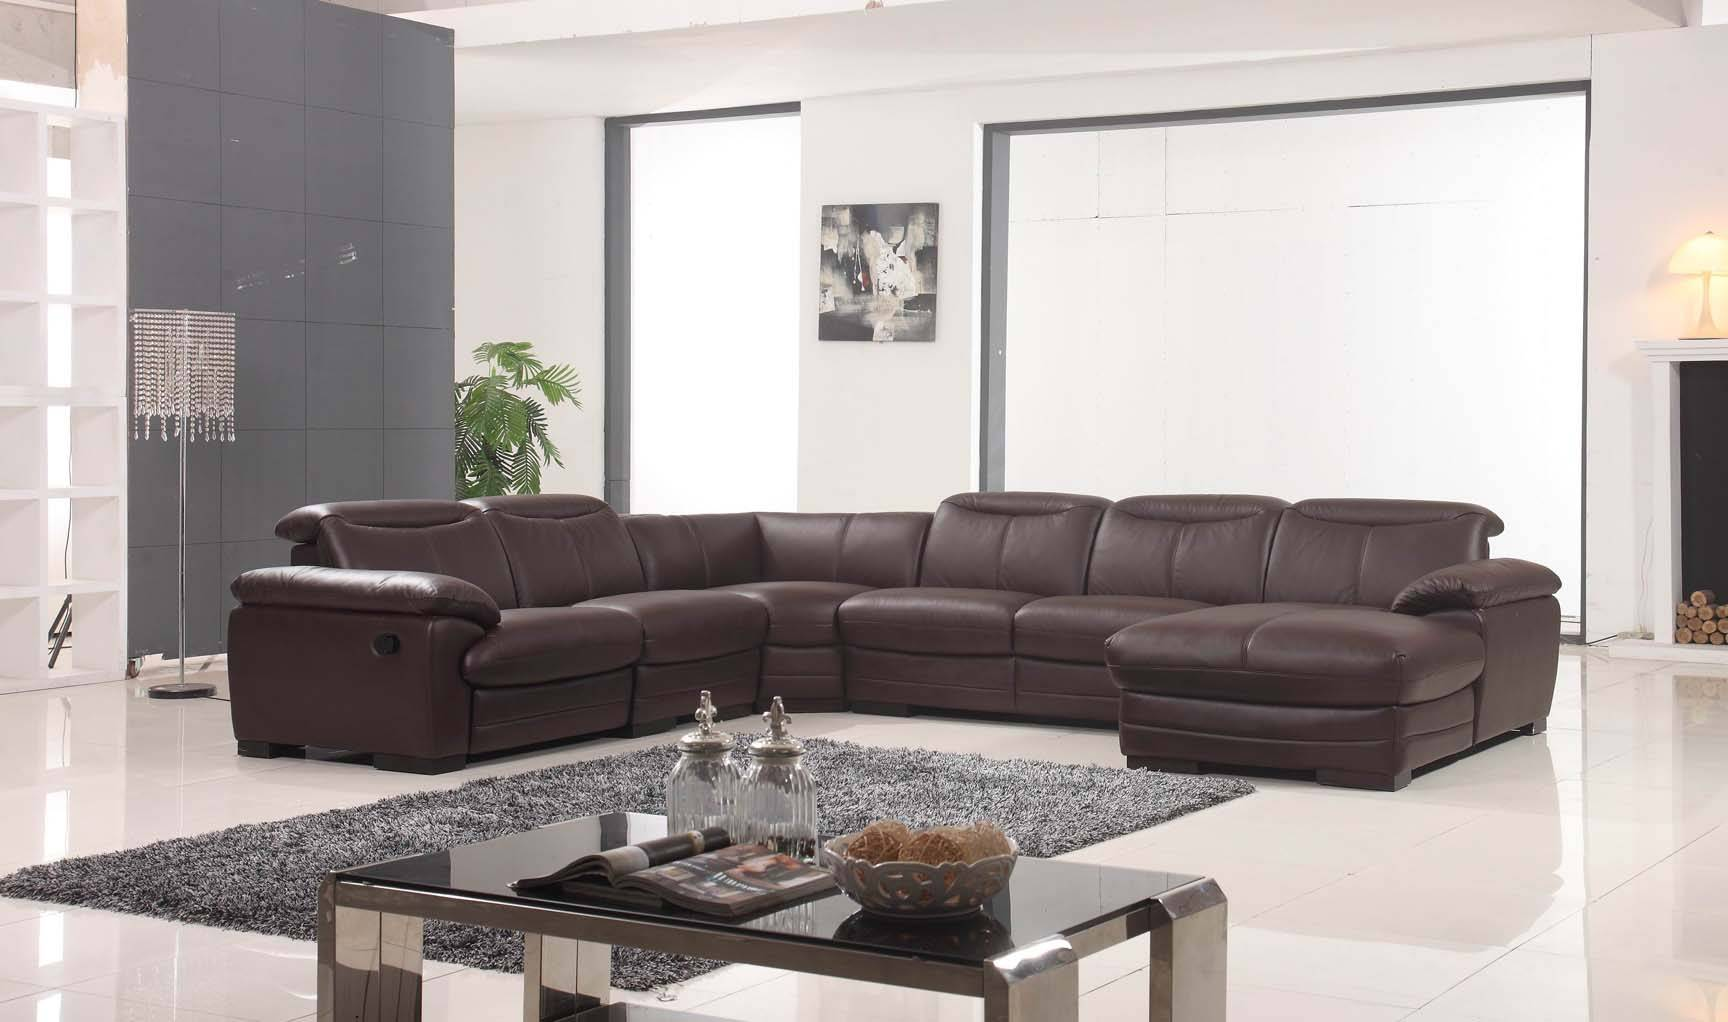 Sensational Large Brown Leather Contemporary Sectional Set With Recliner Chair Machost Co Dining Chair Design Ideas Machostcouk